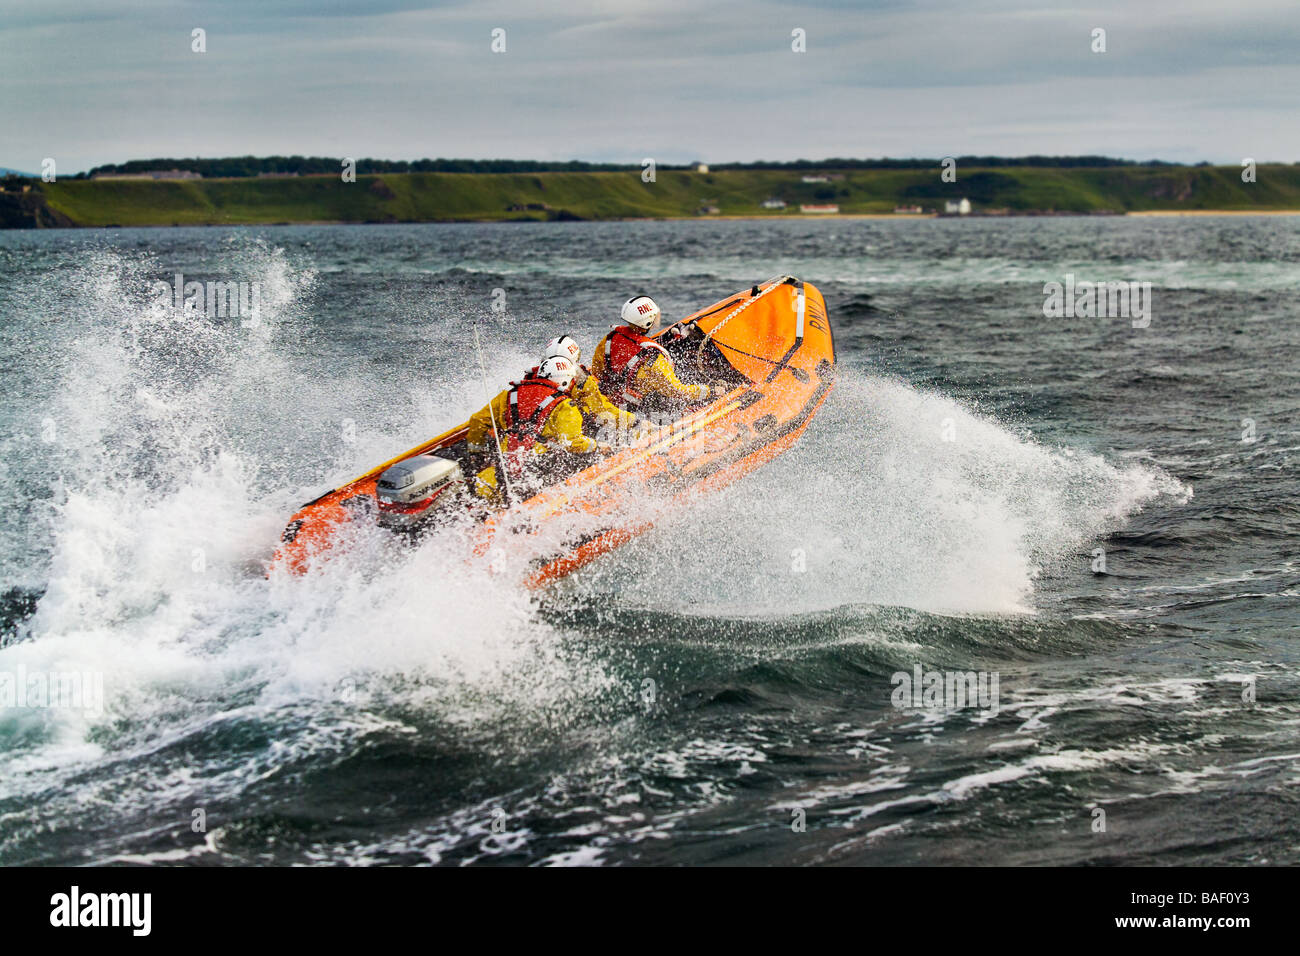 photograph of RNLI rescue rib jumping a wave - Stock Image